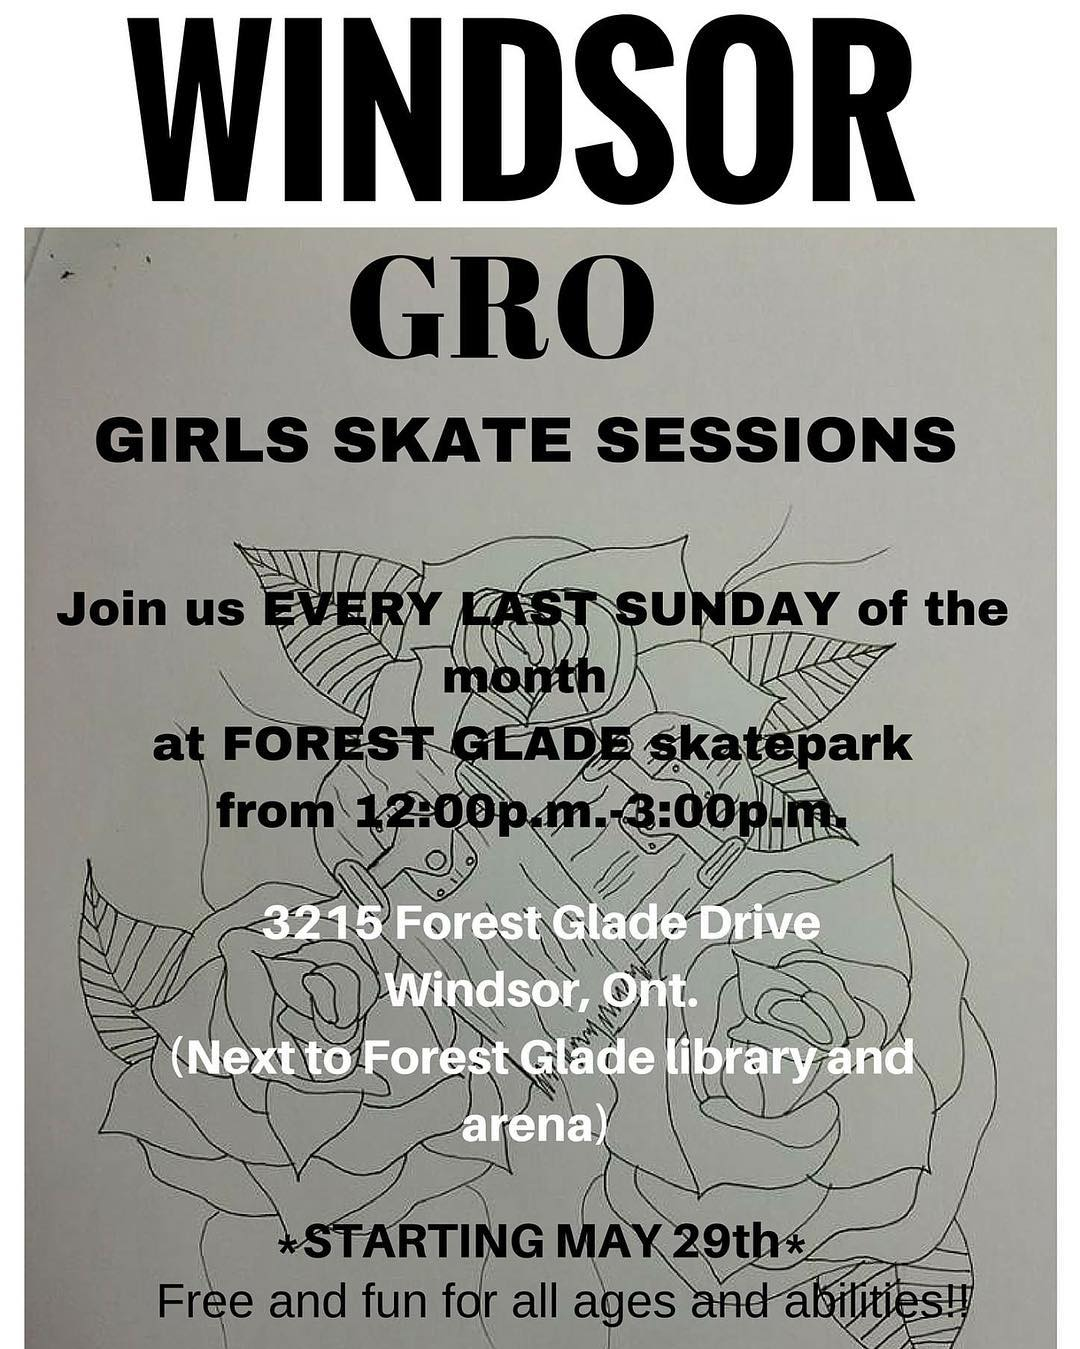 Come shred with he Windsor GRO crew this Sunday at Forest Glade Skatepark